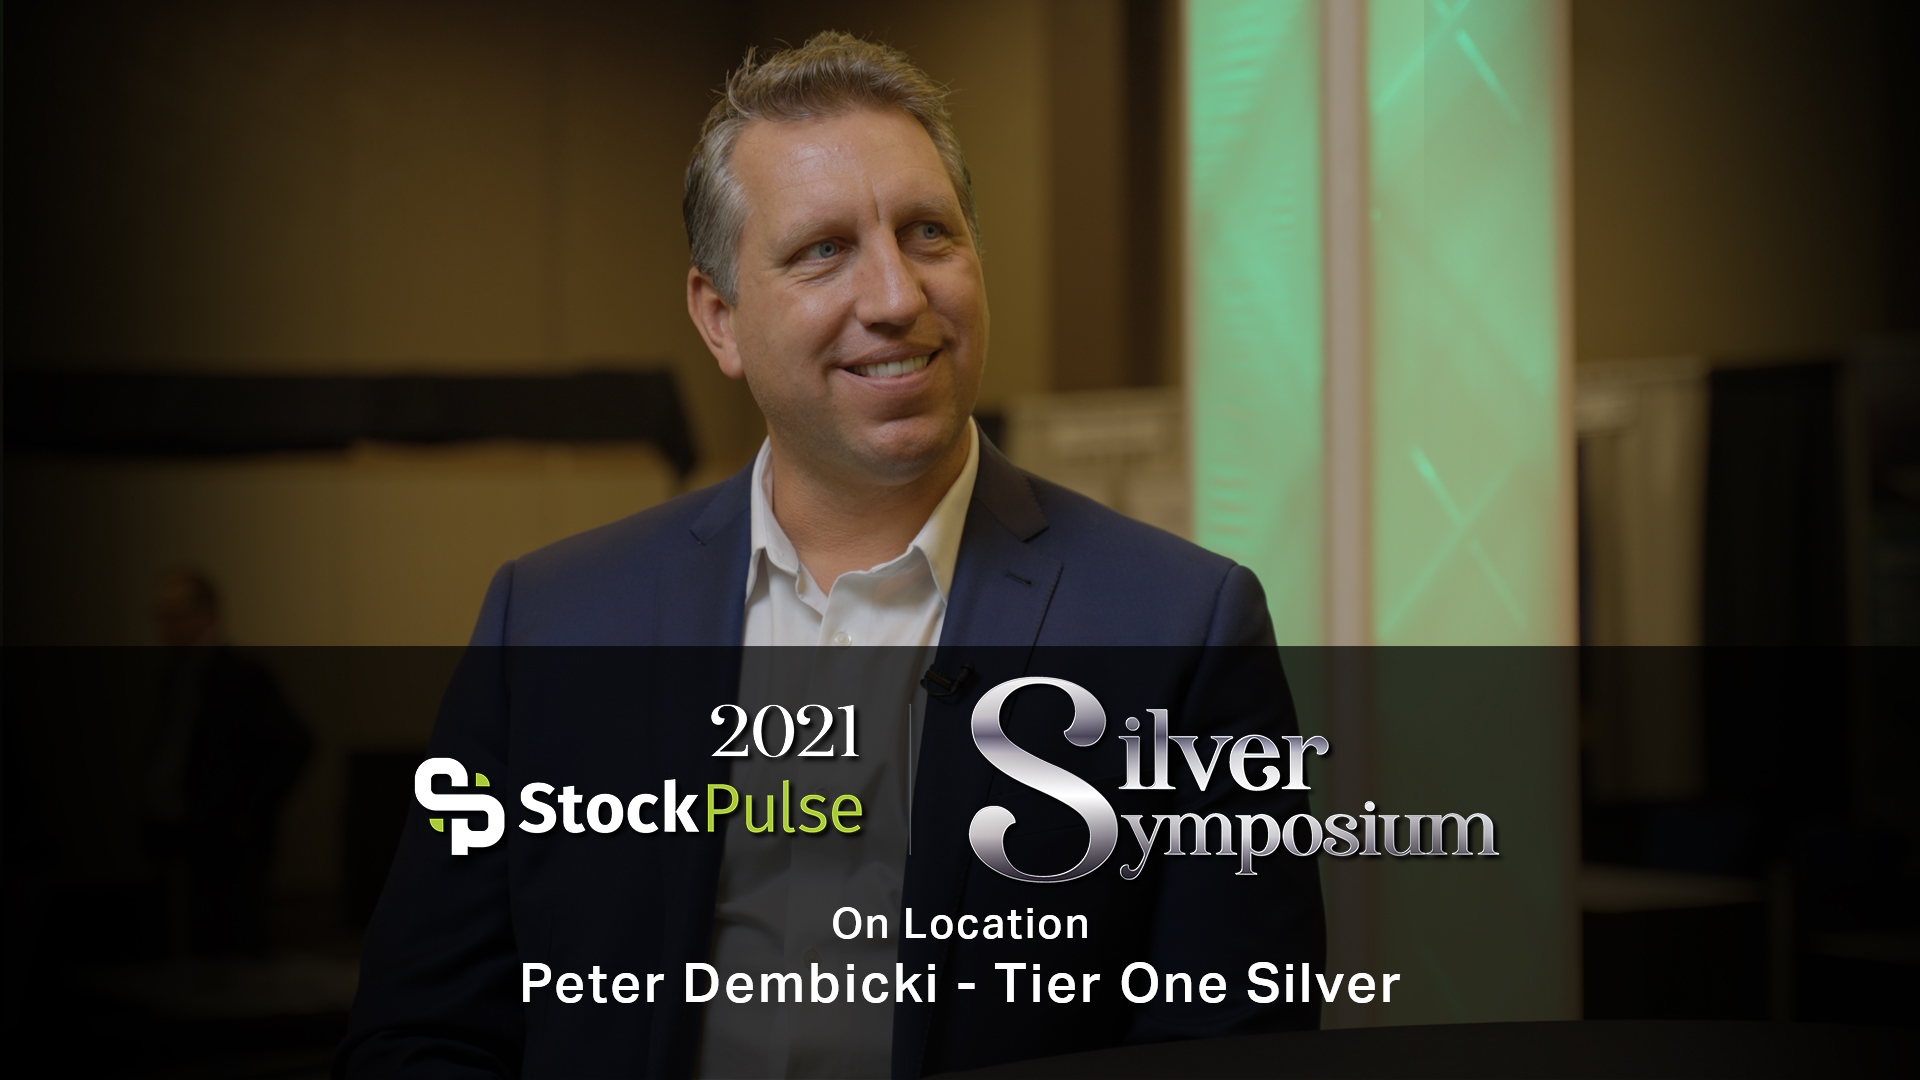 On Location with Peter Dembicki of Tier One Silver